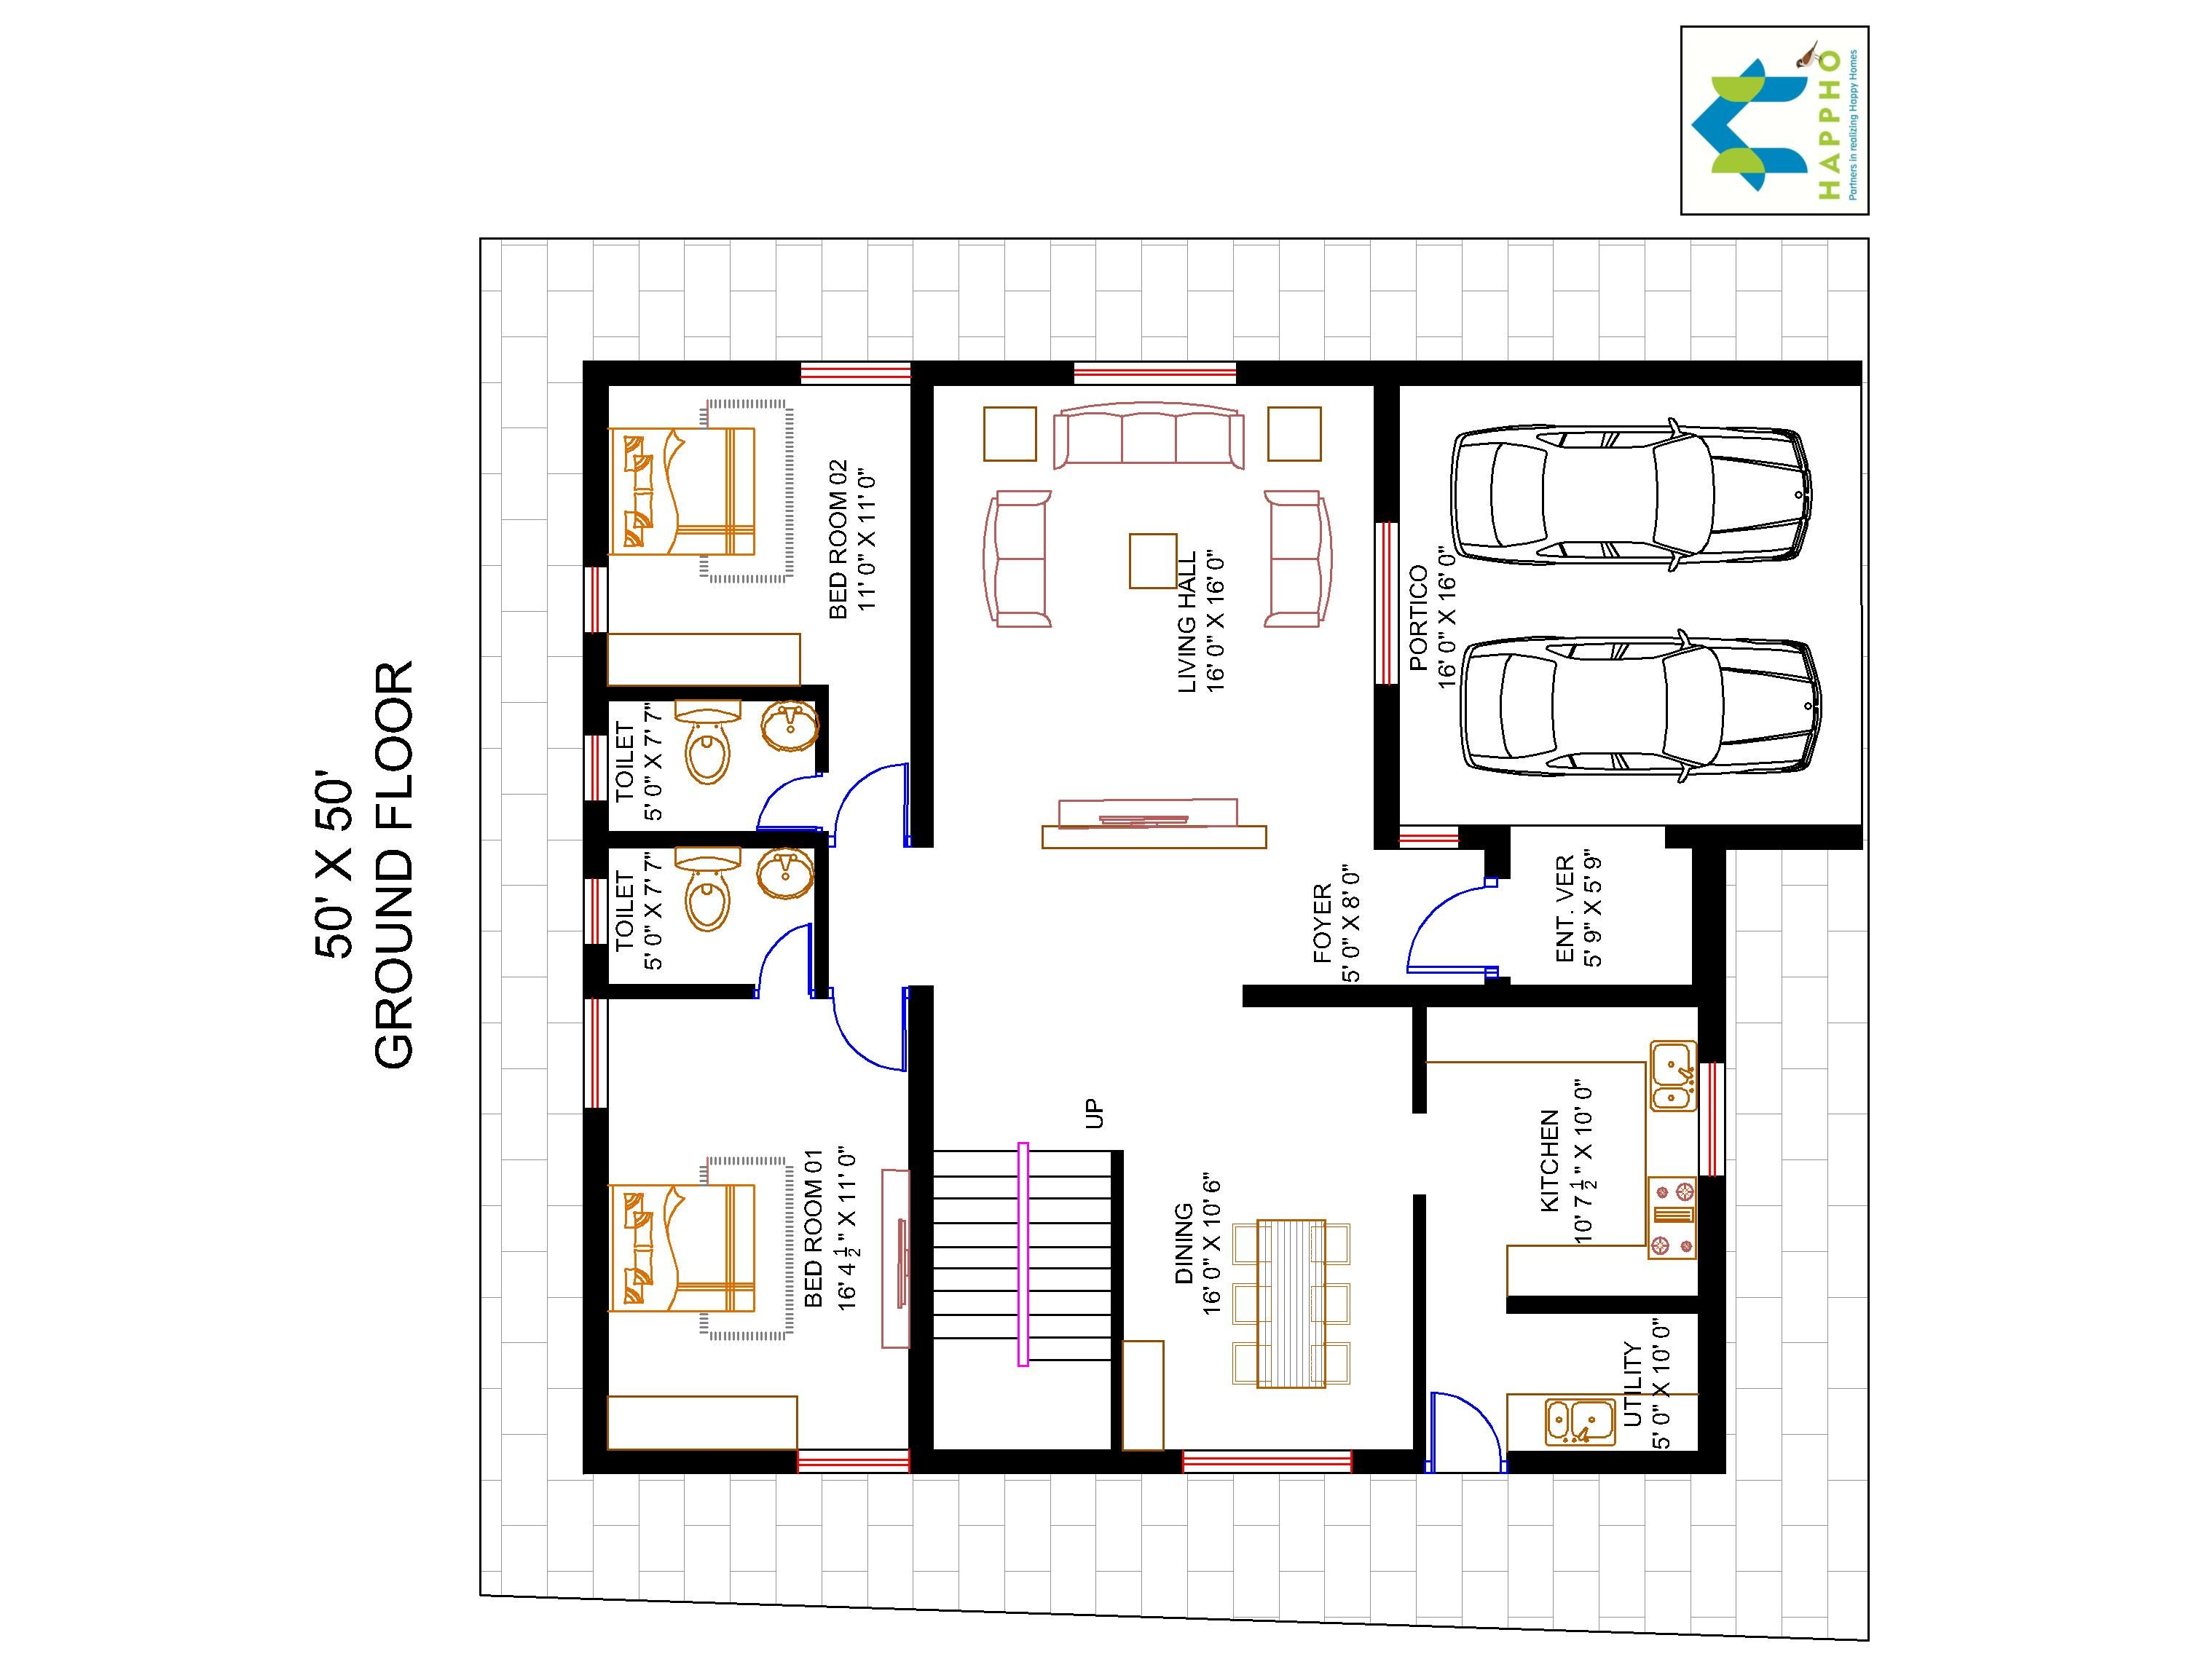 4 bhk floor plan for 50 x 50 plot 2500 square feet 278 for Floor plans 2500 square feet